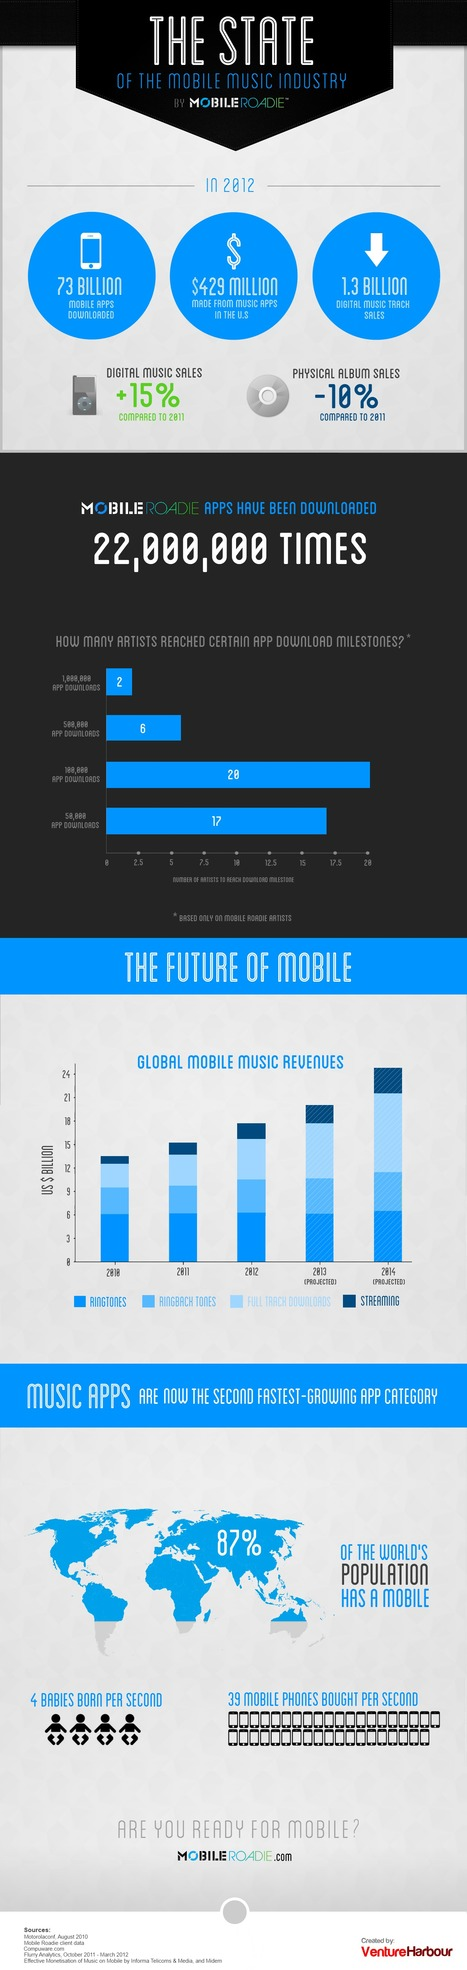 The State of the Mobile Music Industry [INFOGRAPHIC] | Show Up Public | Scoop.it